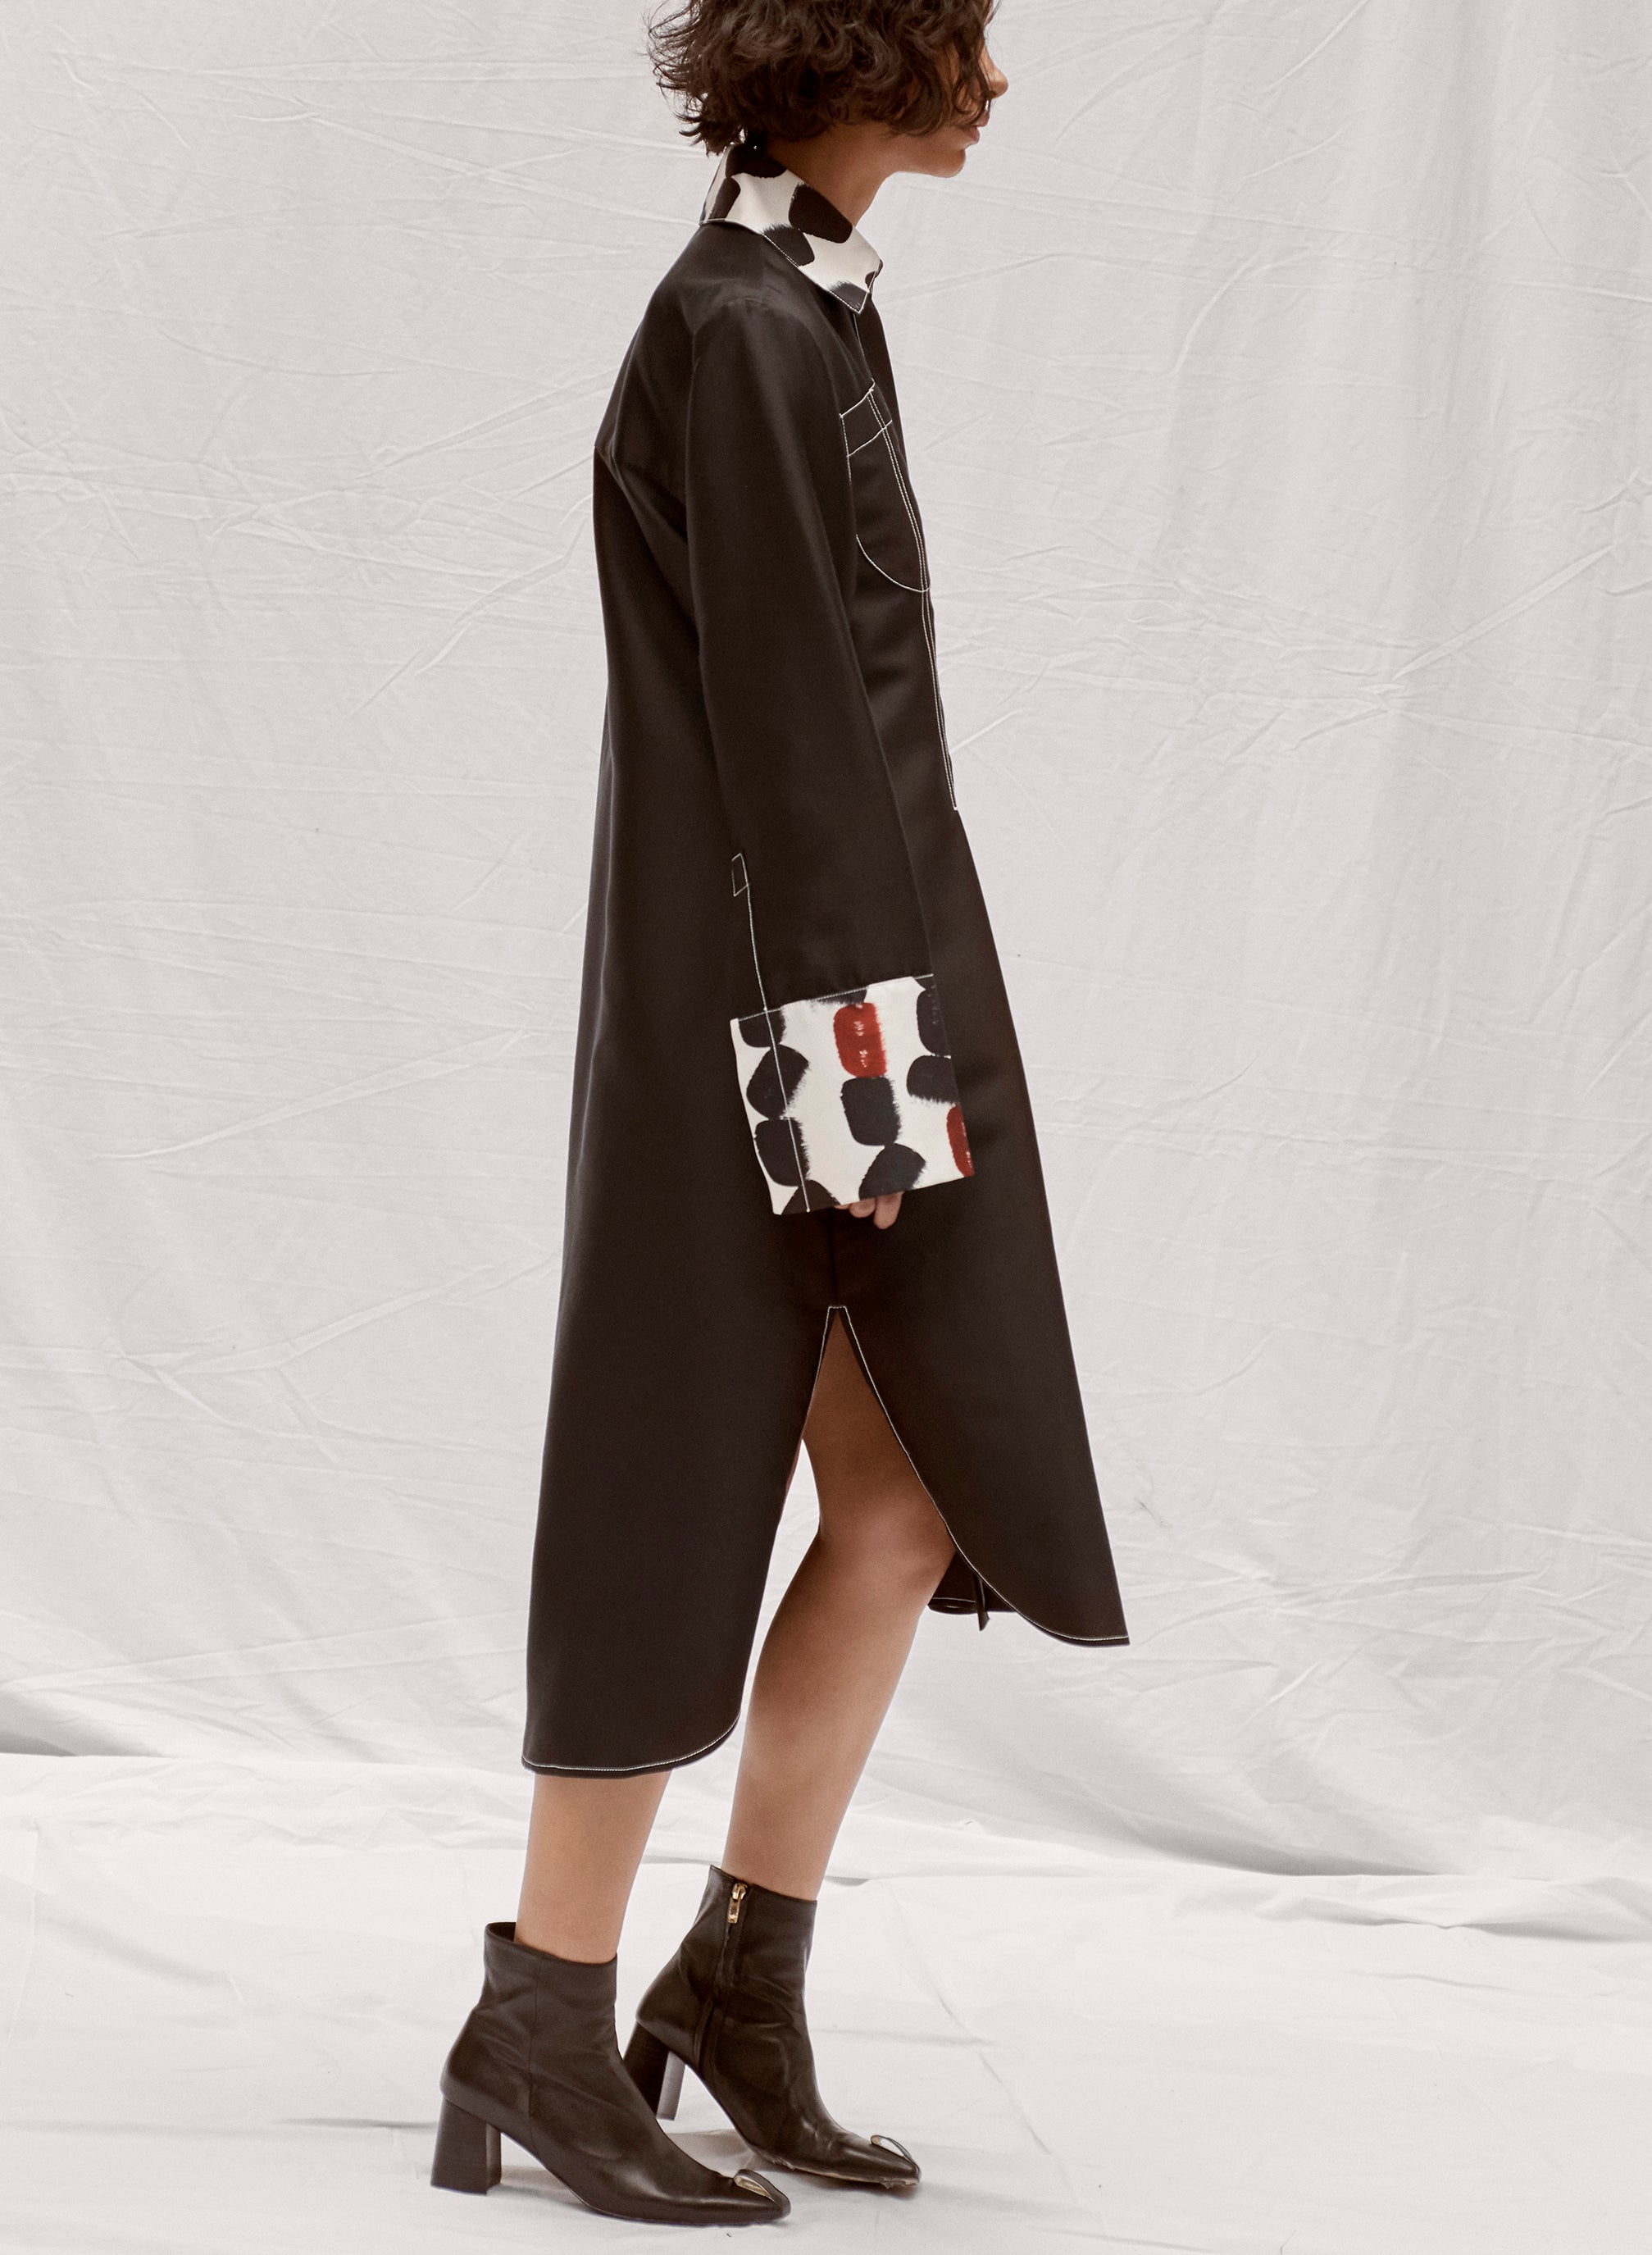 claudia li fall winter 2019 pintuck black and print shirt dress with top stitch